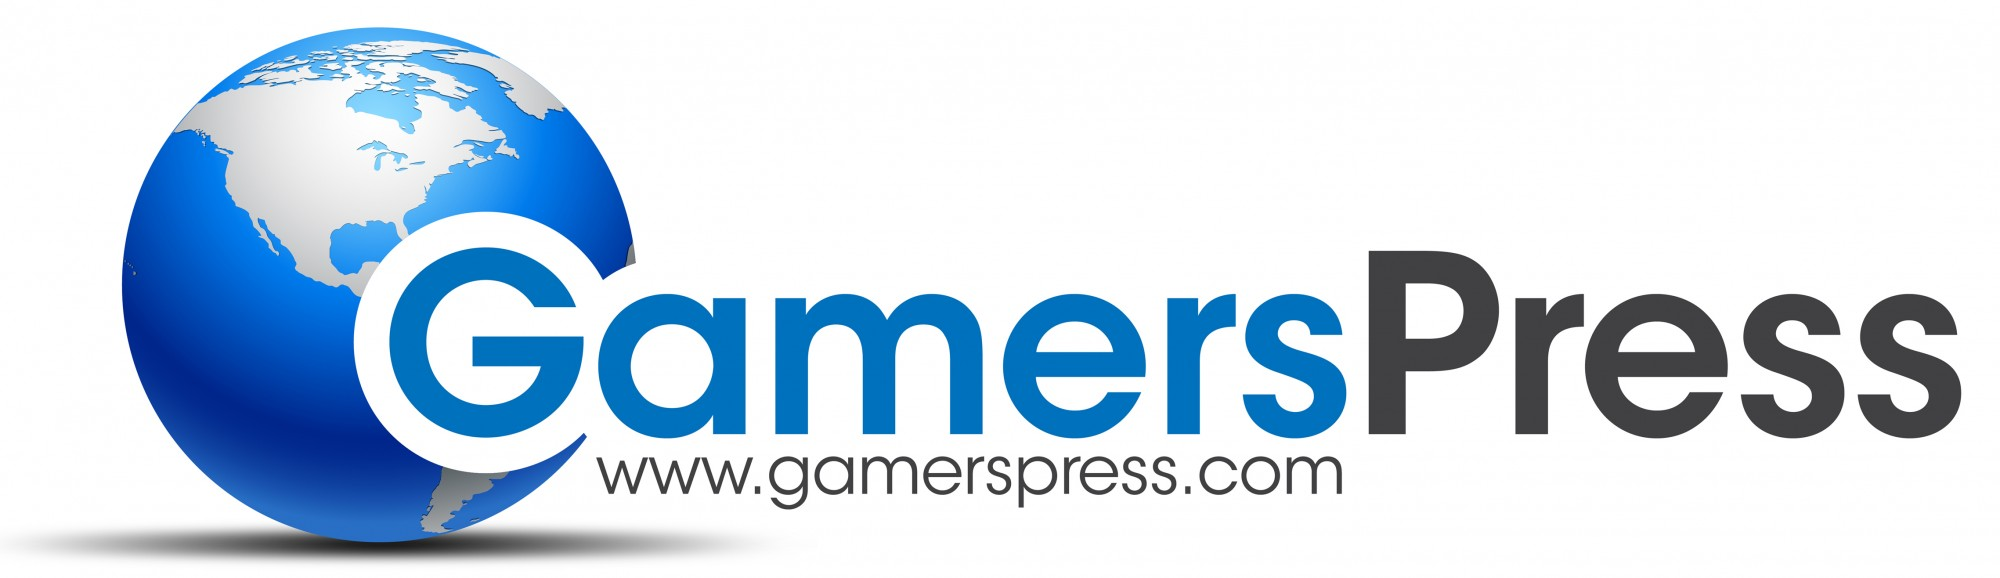 Online Gambling Press